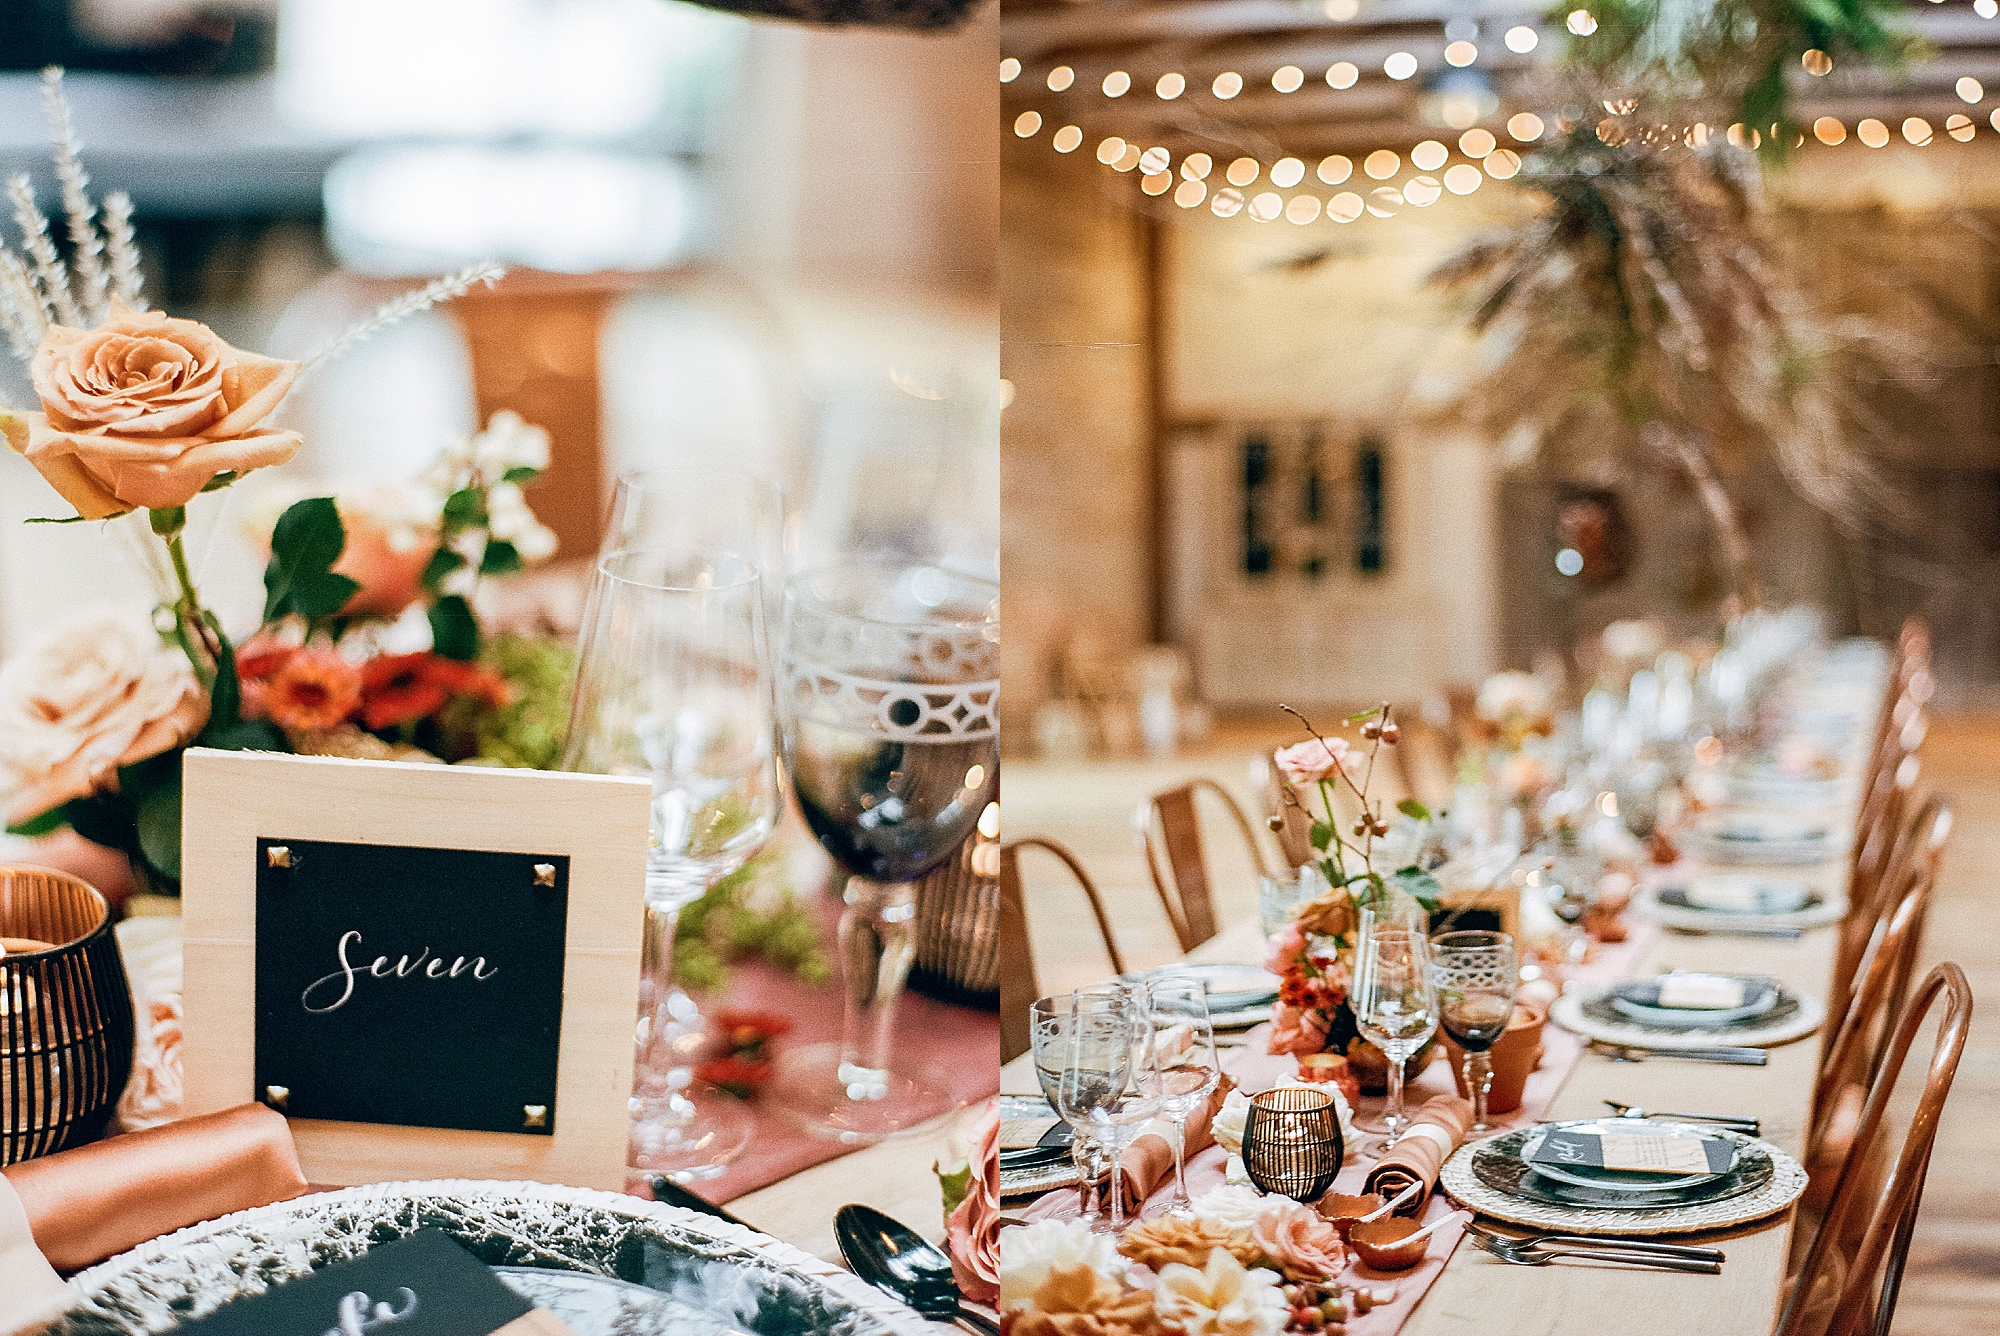 Terrain at Devon Yards Wedding Photographer Magdalena Studios Film Photos with Shannon Wellington Weddings0068